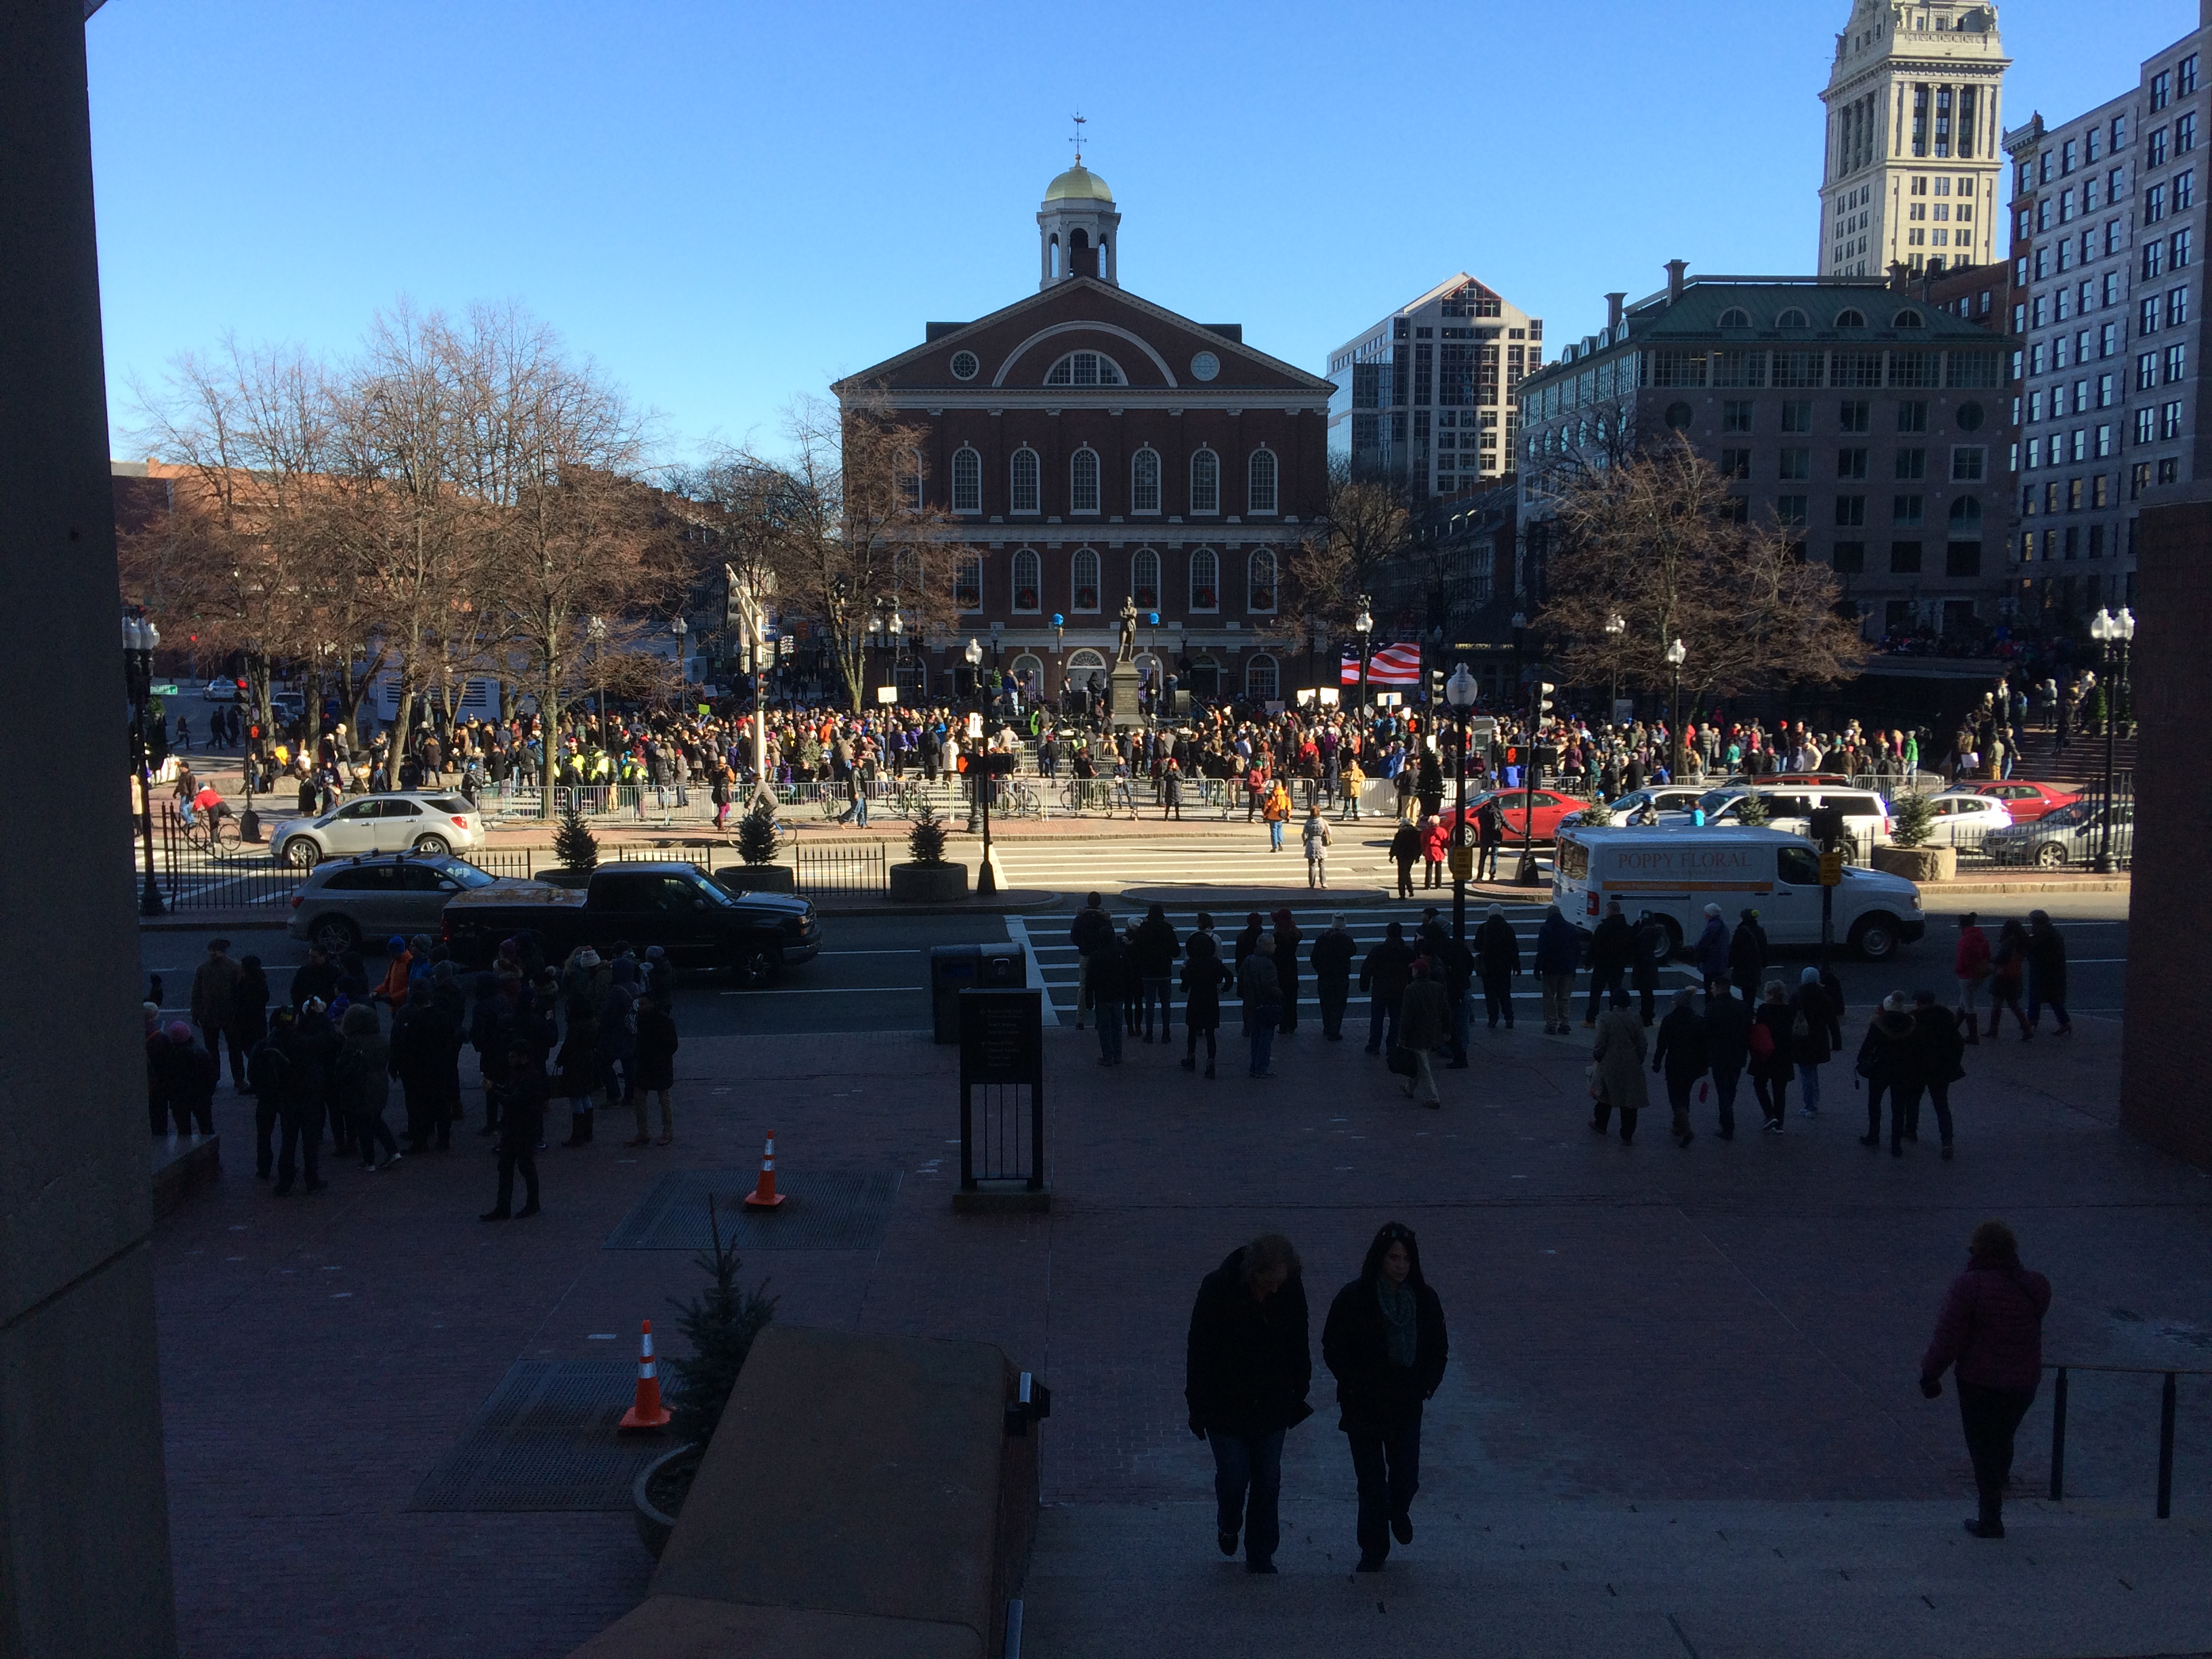 Crowd gathering an hour before Boston healthcare rally. January 15,, 2017. click to view larger version